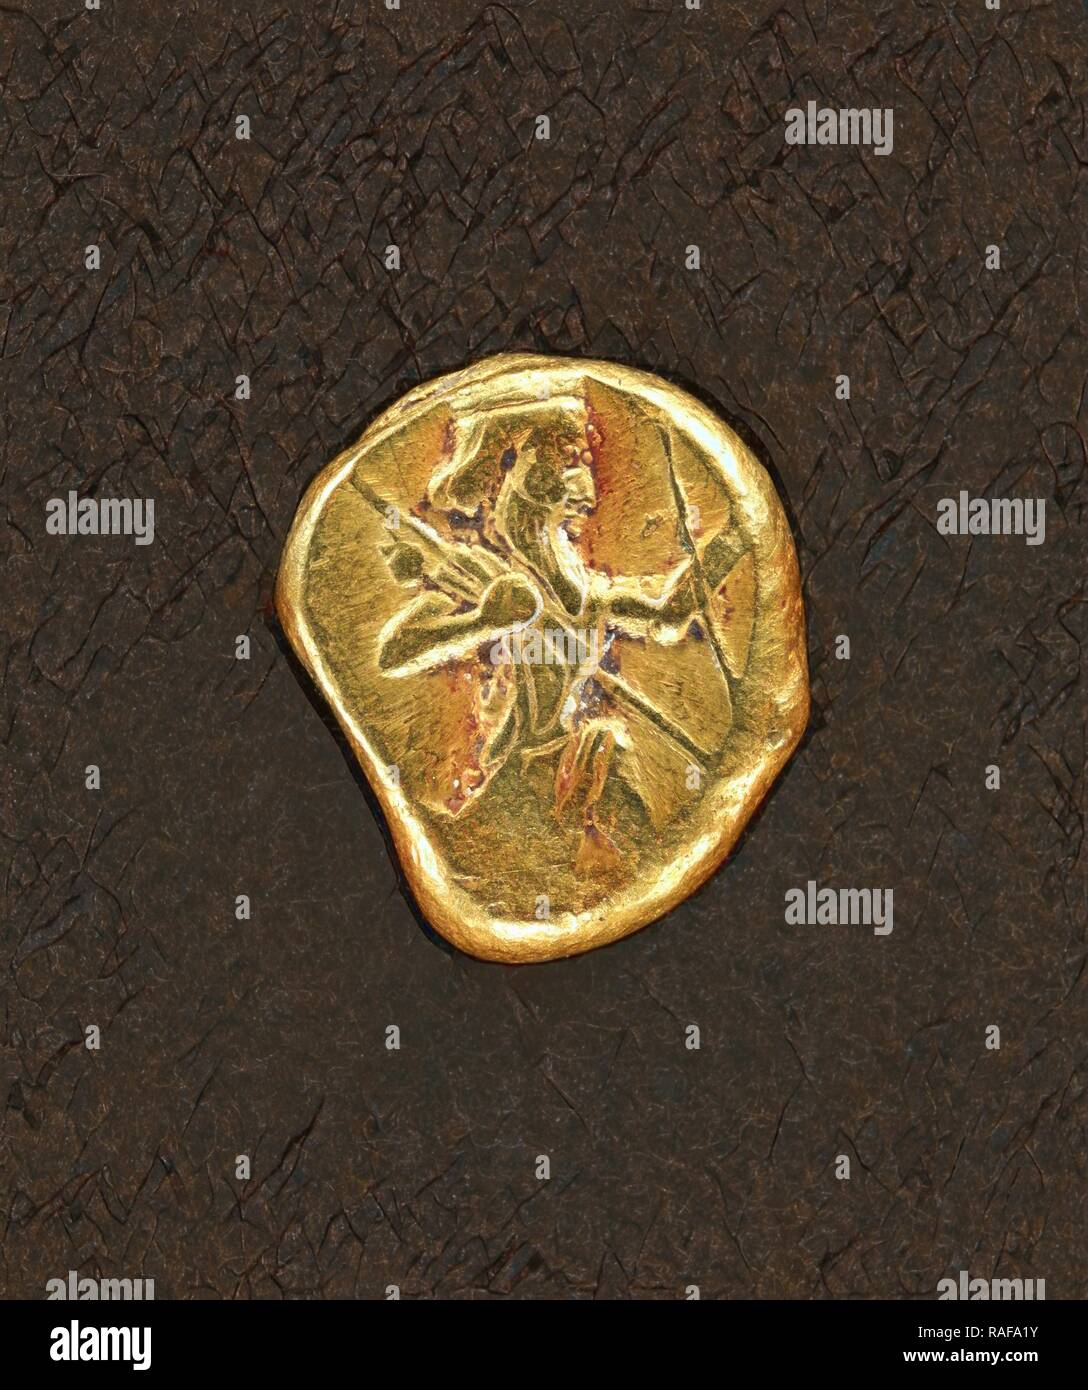 Daric, Persia, 5th - 4th century B.C, Gold, 0.0083 kg (0.0183 lb.). Reimagined by Gibon. Classic art with a modern reimagined - Stock Image